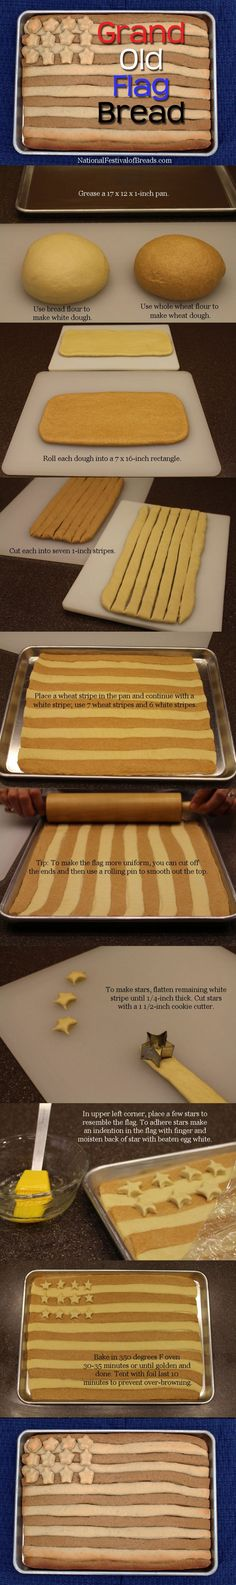 Grand Old Flag bread: In upper left corner, place a few stars to resemble the flag. To adhere stars make an indention in the flag with finger and moisten back of star with beaten egg white.